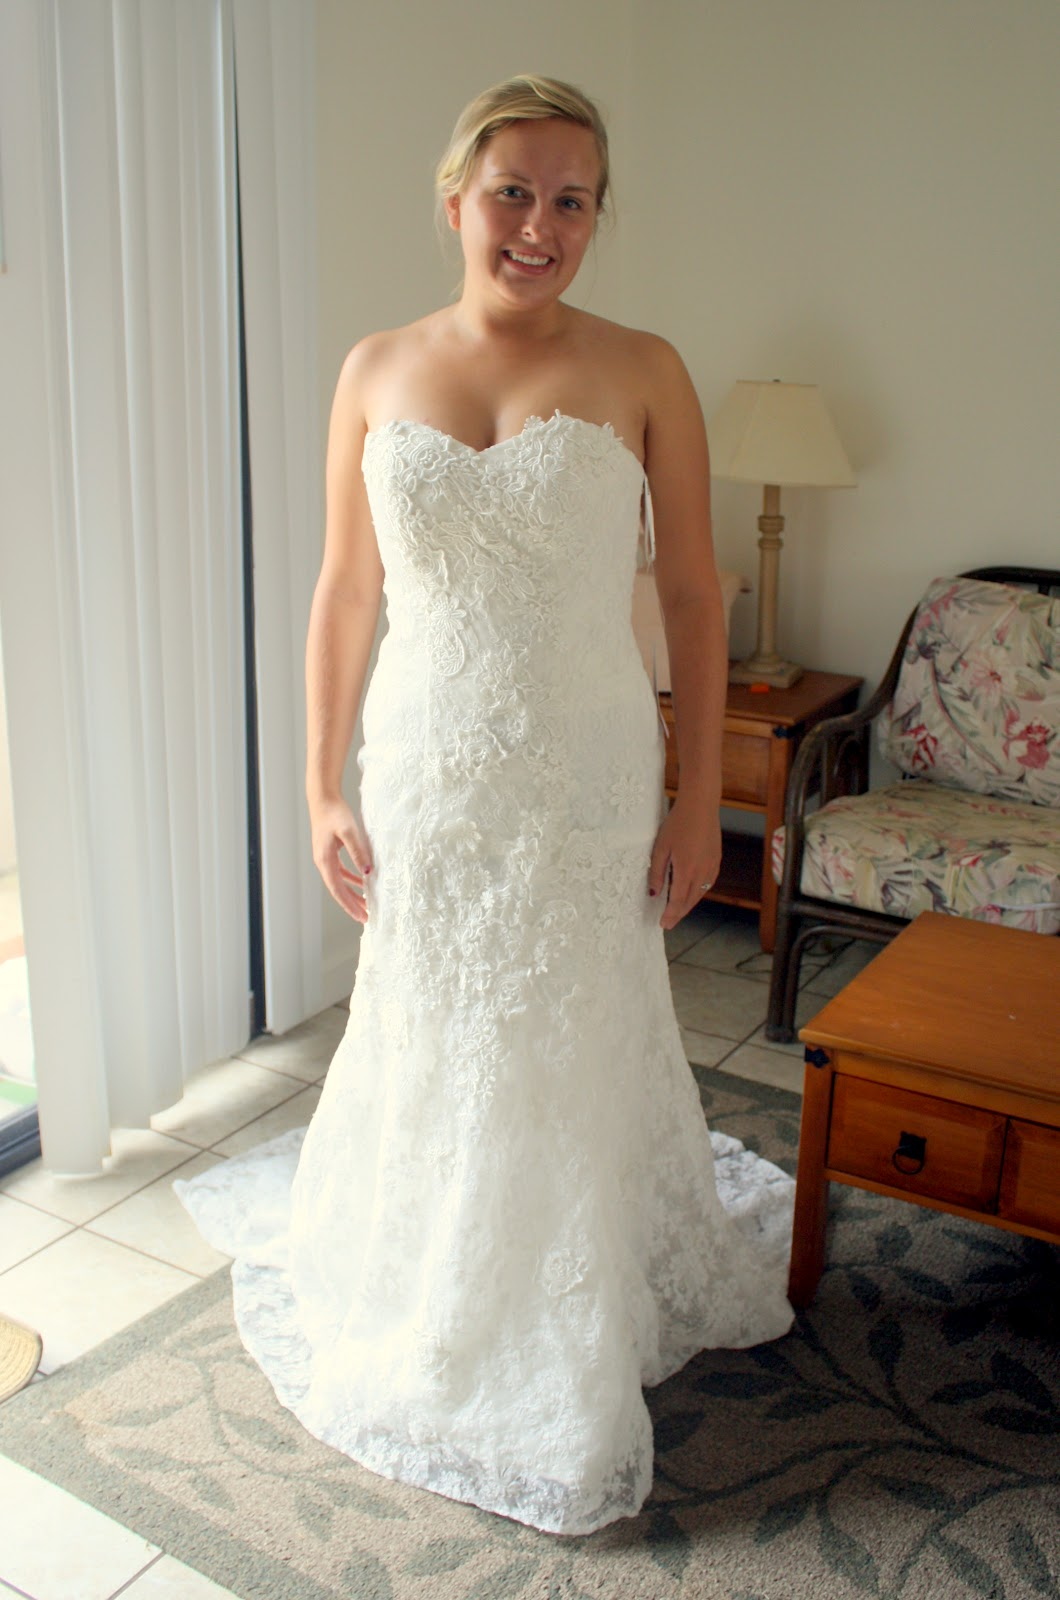 Sew Laie Online Ordered Wedding Dress Disaster Averted